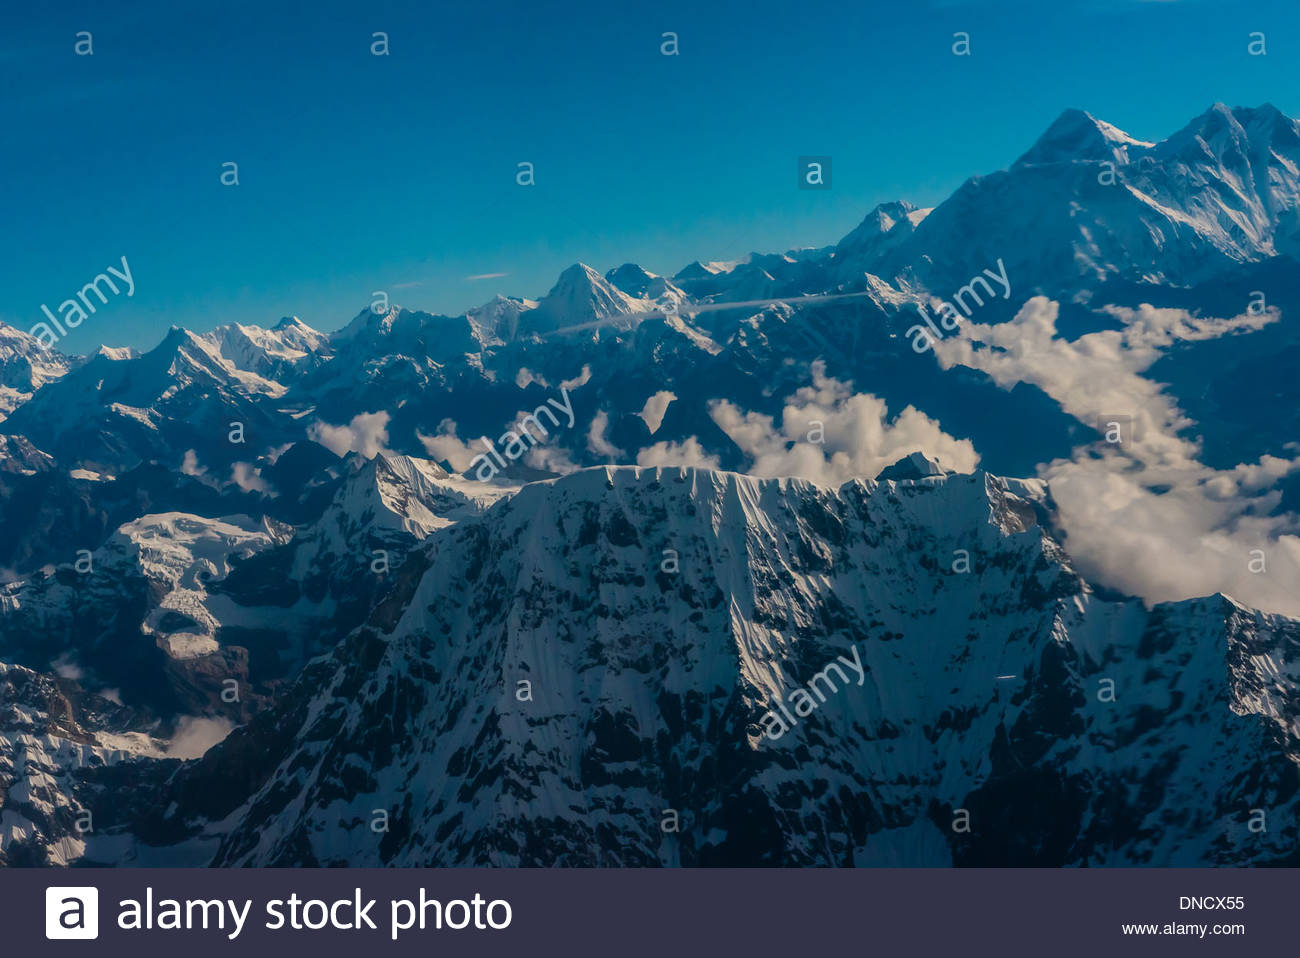 Aerial view of the high peaks of the Himalayan Range, near Mt. Everest, Nepal. - Stock Image